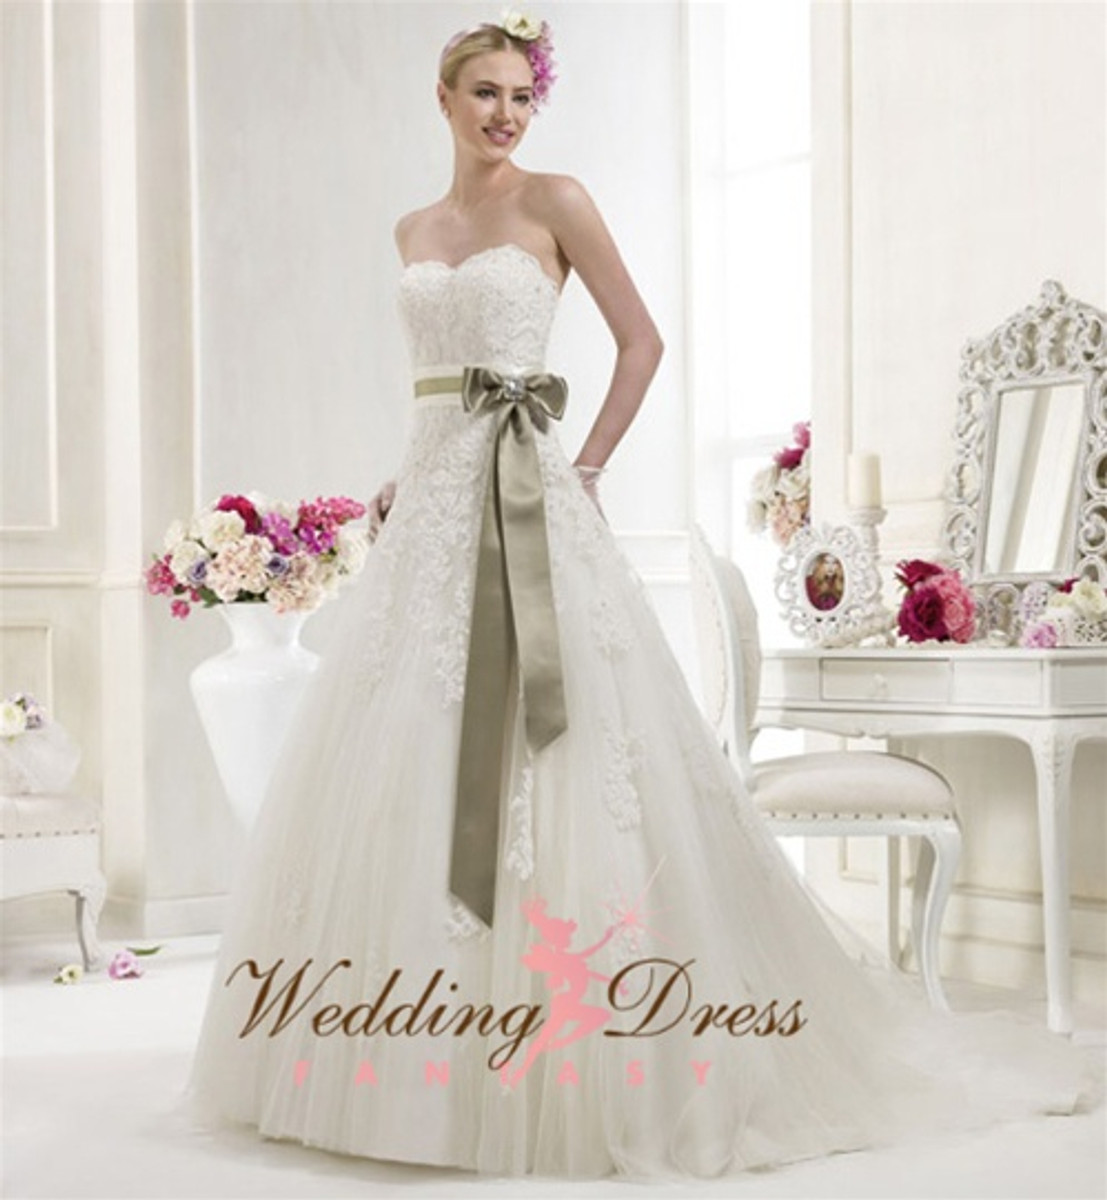 Vintage Inspired Wedding Dress- Available in Every Color 35